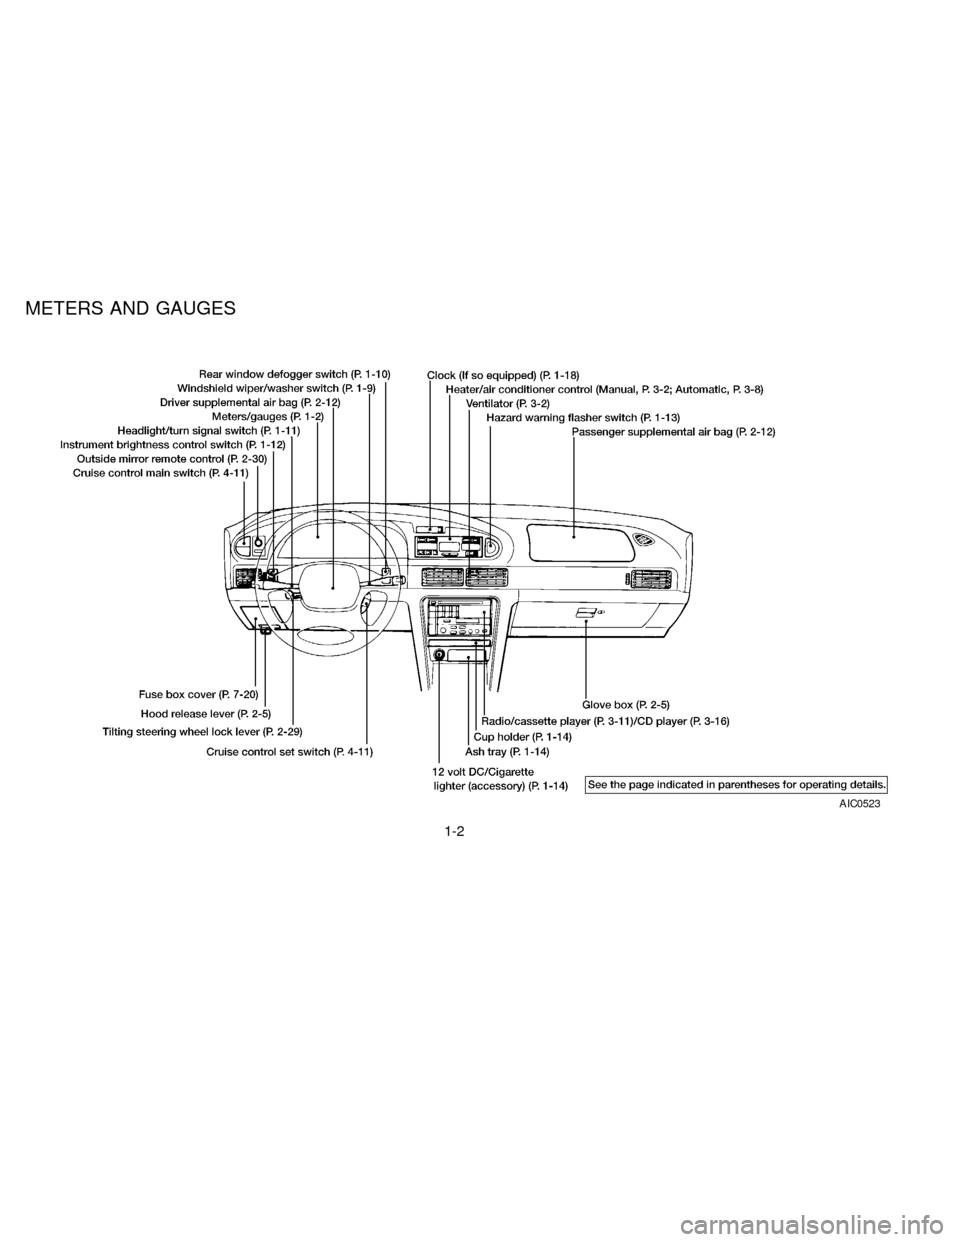 NISSAN ALTIMA 1997 U13 / 1.G Owners Manual